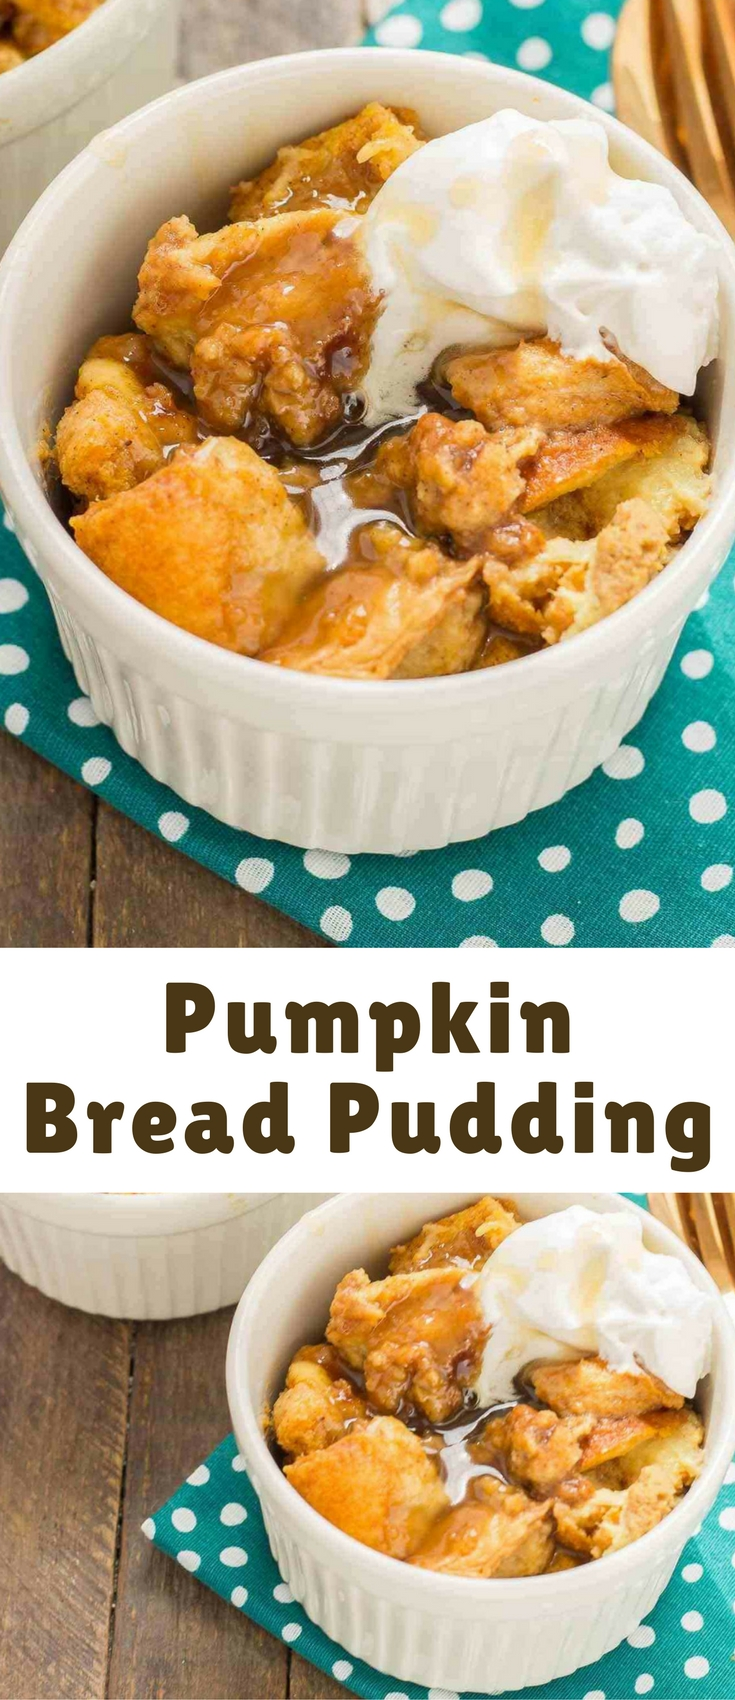 Warm and toasty, this Pumpkin Bread Pudding with Brown Sugar Sauce is pure bliss and then taken to another level with sweet brown sugar {whiskey} sauce